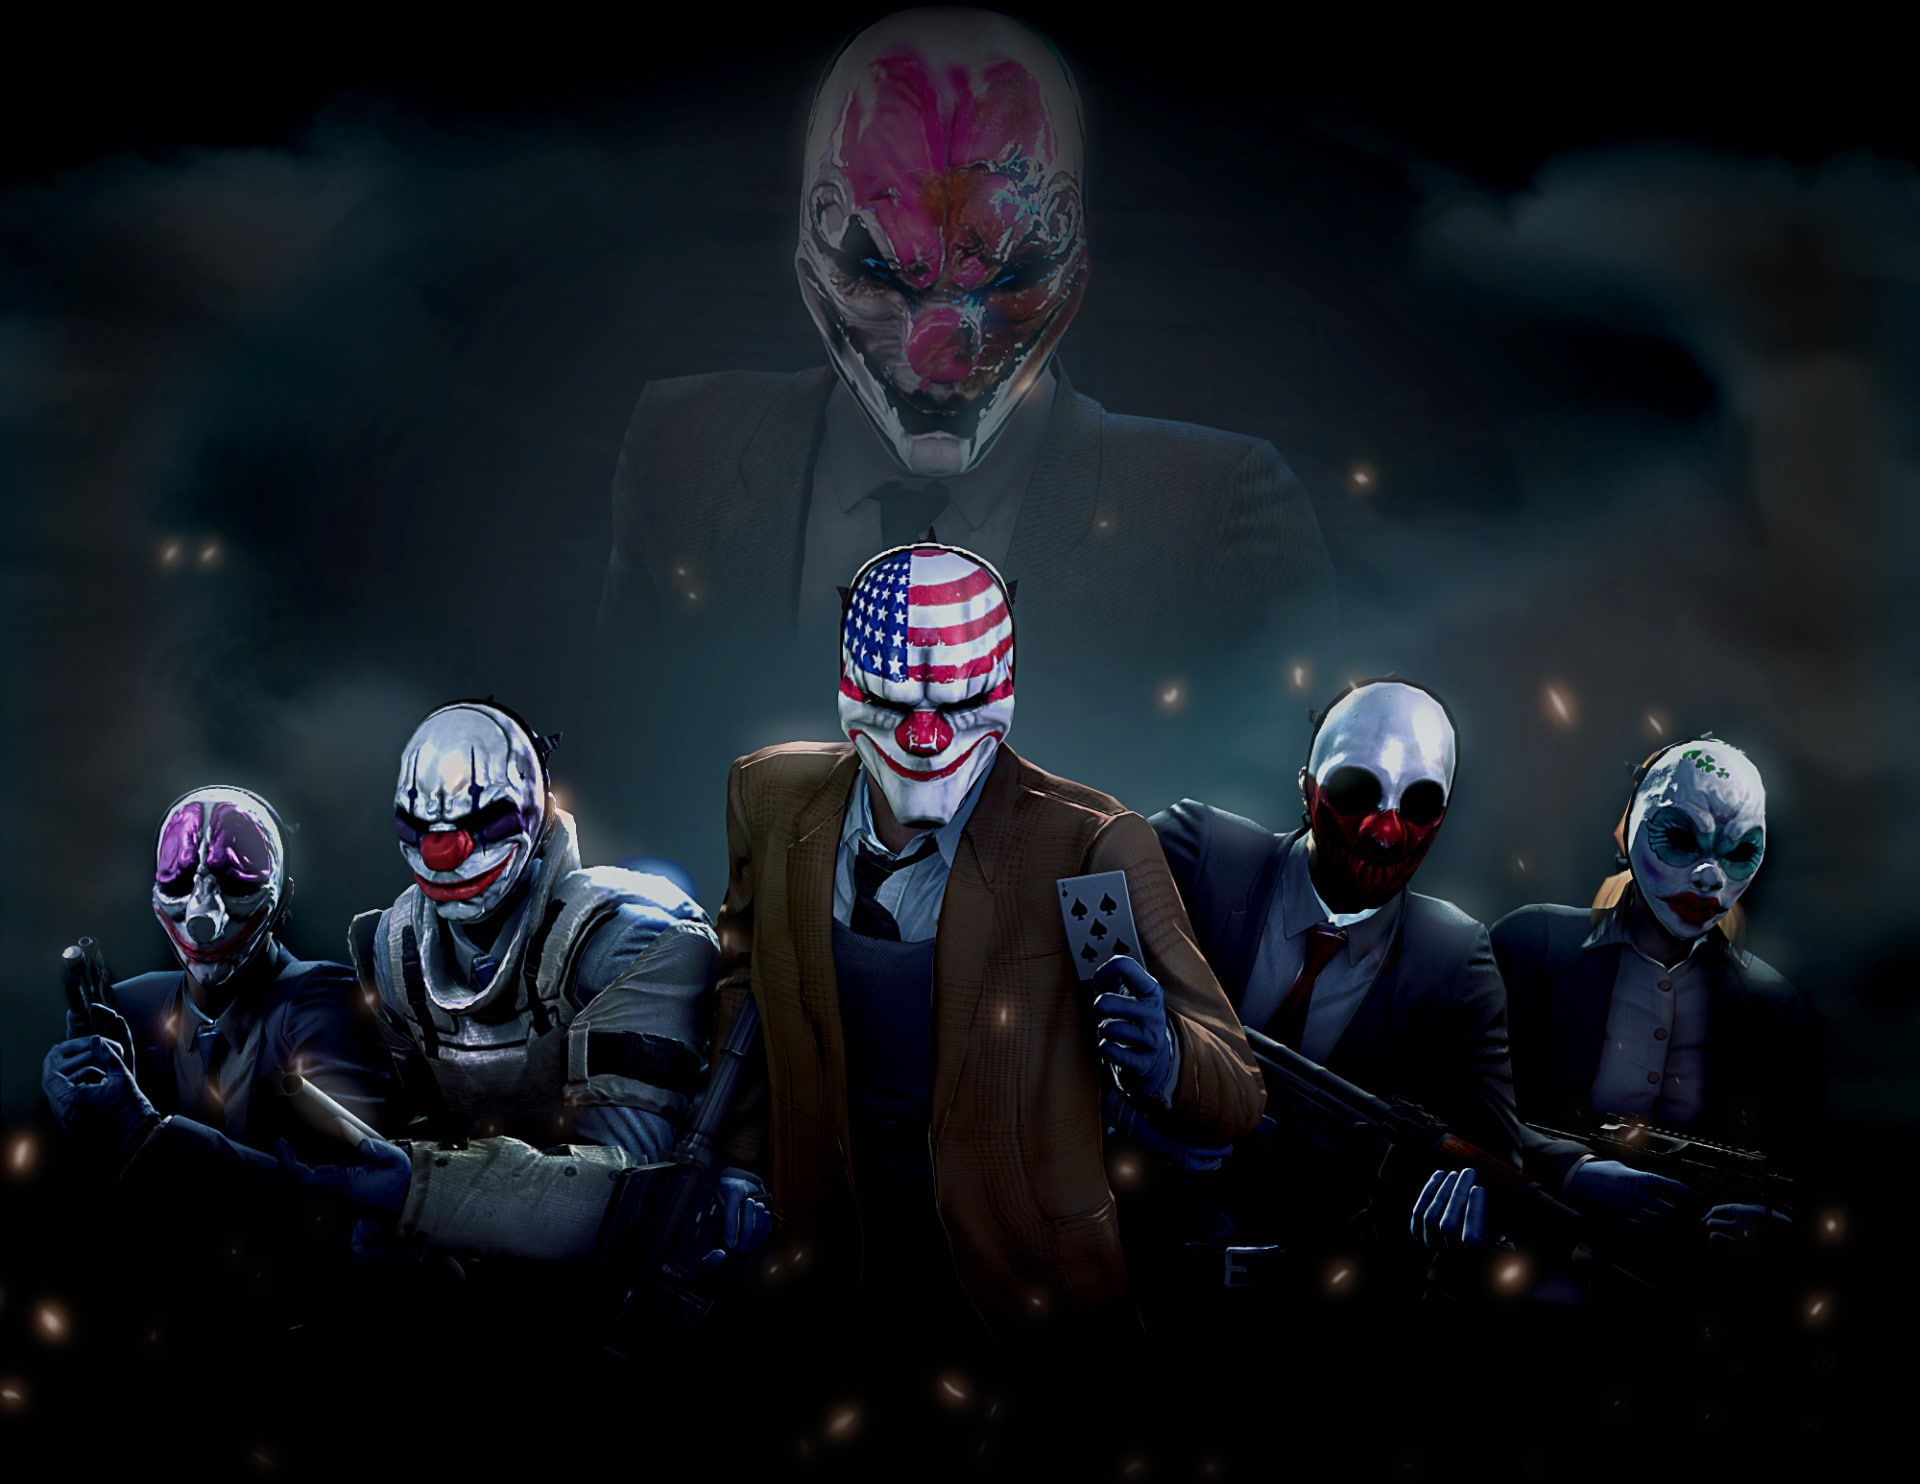 Pin By Mark Batista On Group In 2020 Chains Payday Payday 2 Payday